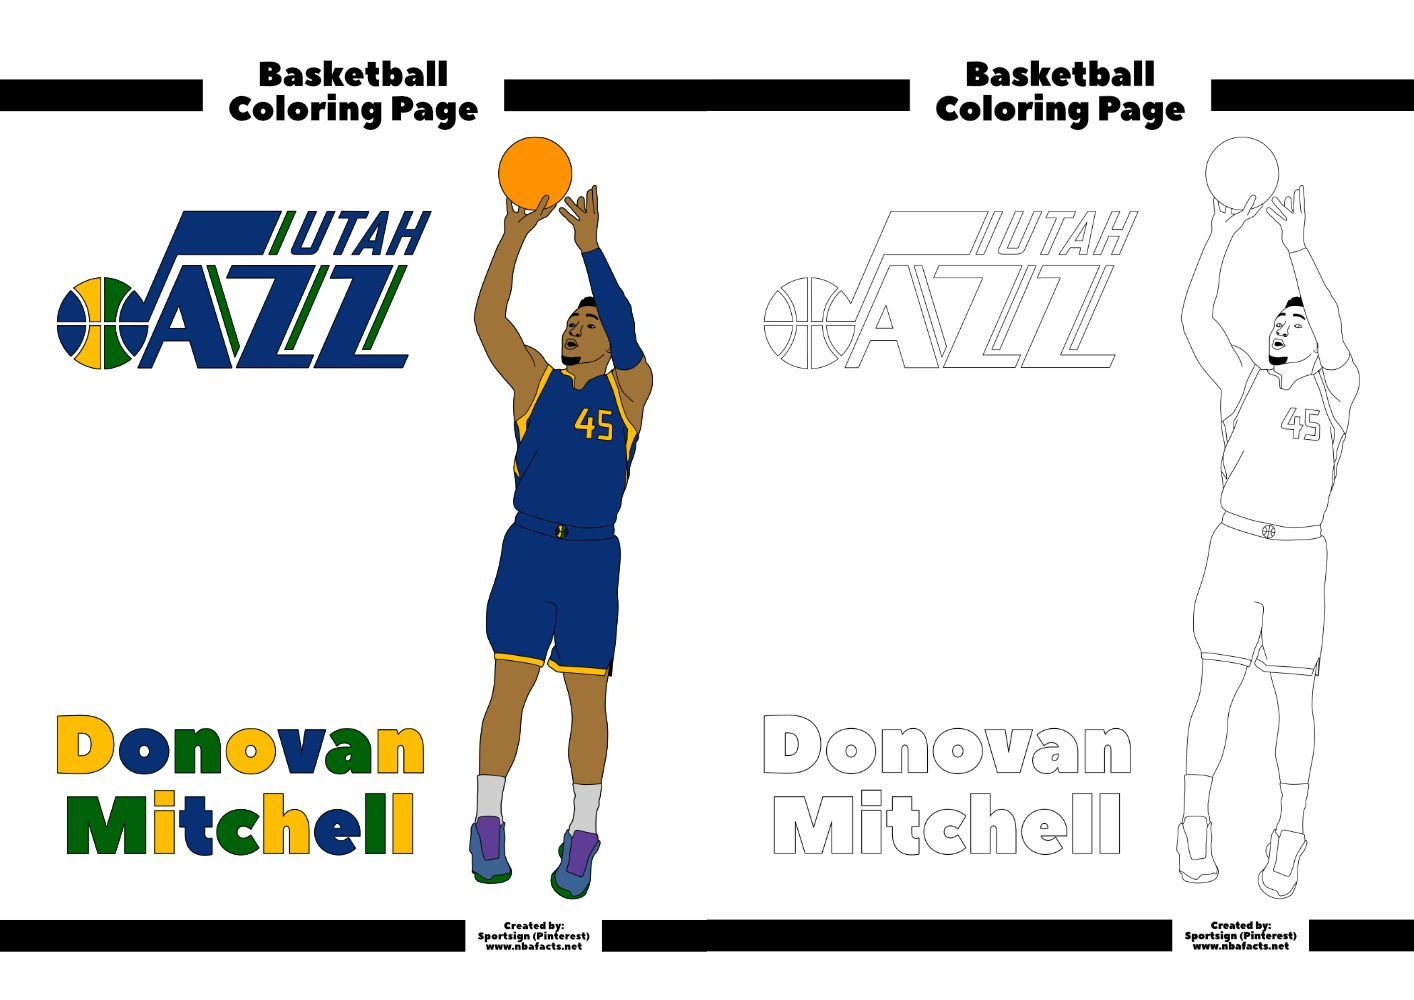 Nba Player For The Utah Jazz Donovan Mitchell This Is A Free Colouring Sheet For Basketball Fans If You Want Th In 2020 Utah Jazz Coloring Pages Free Coloring Pages